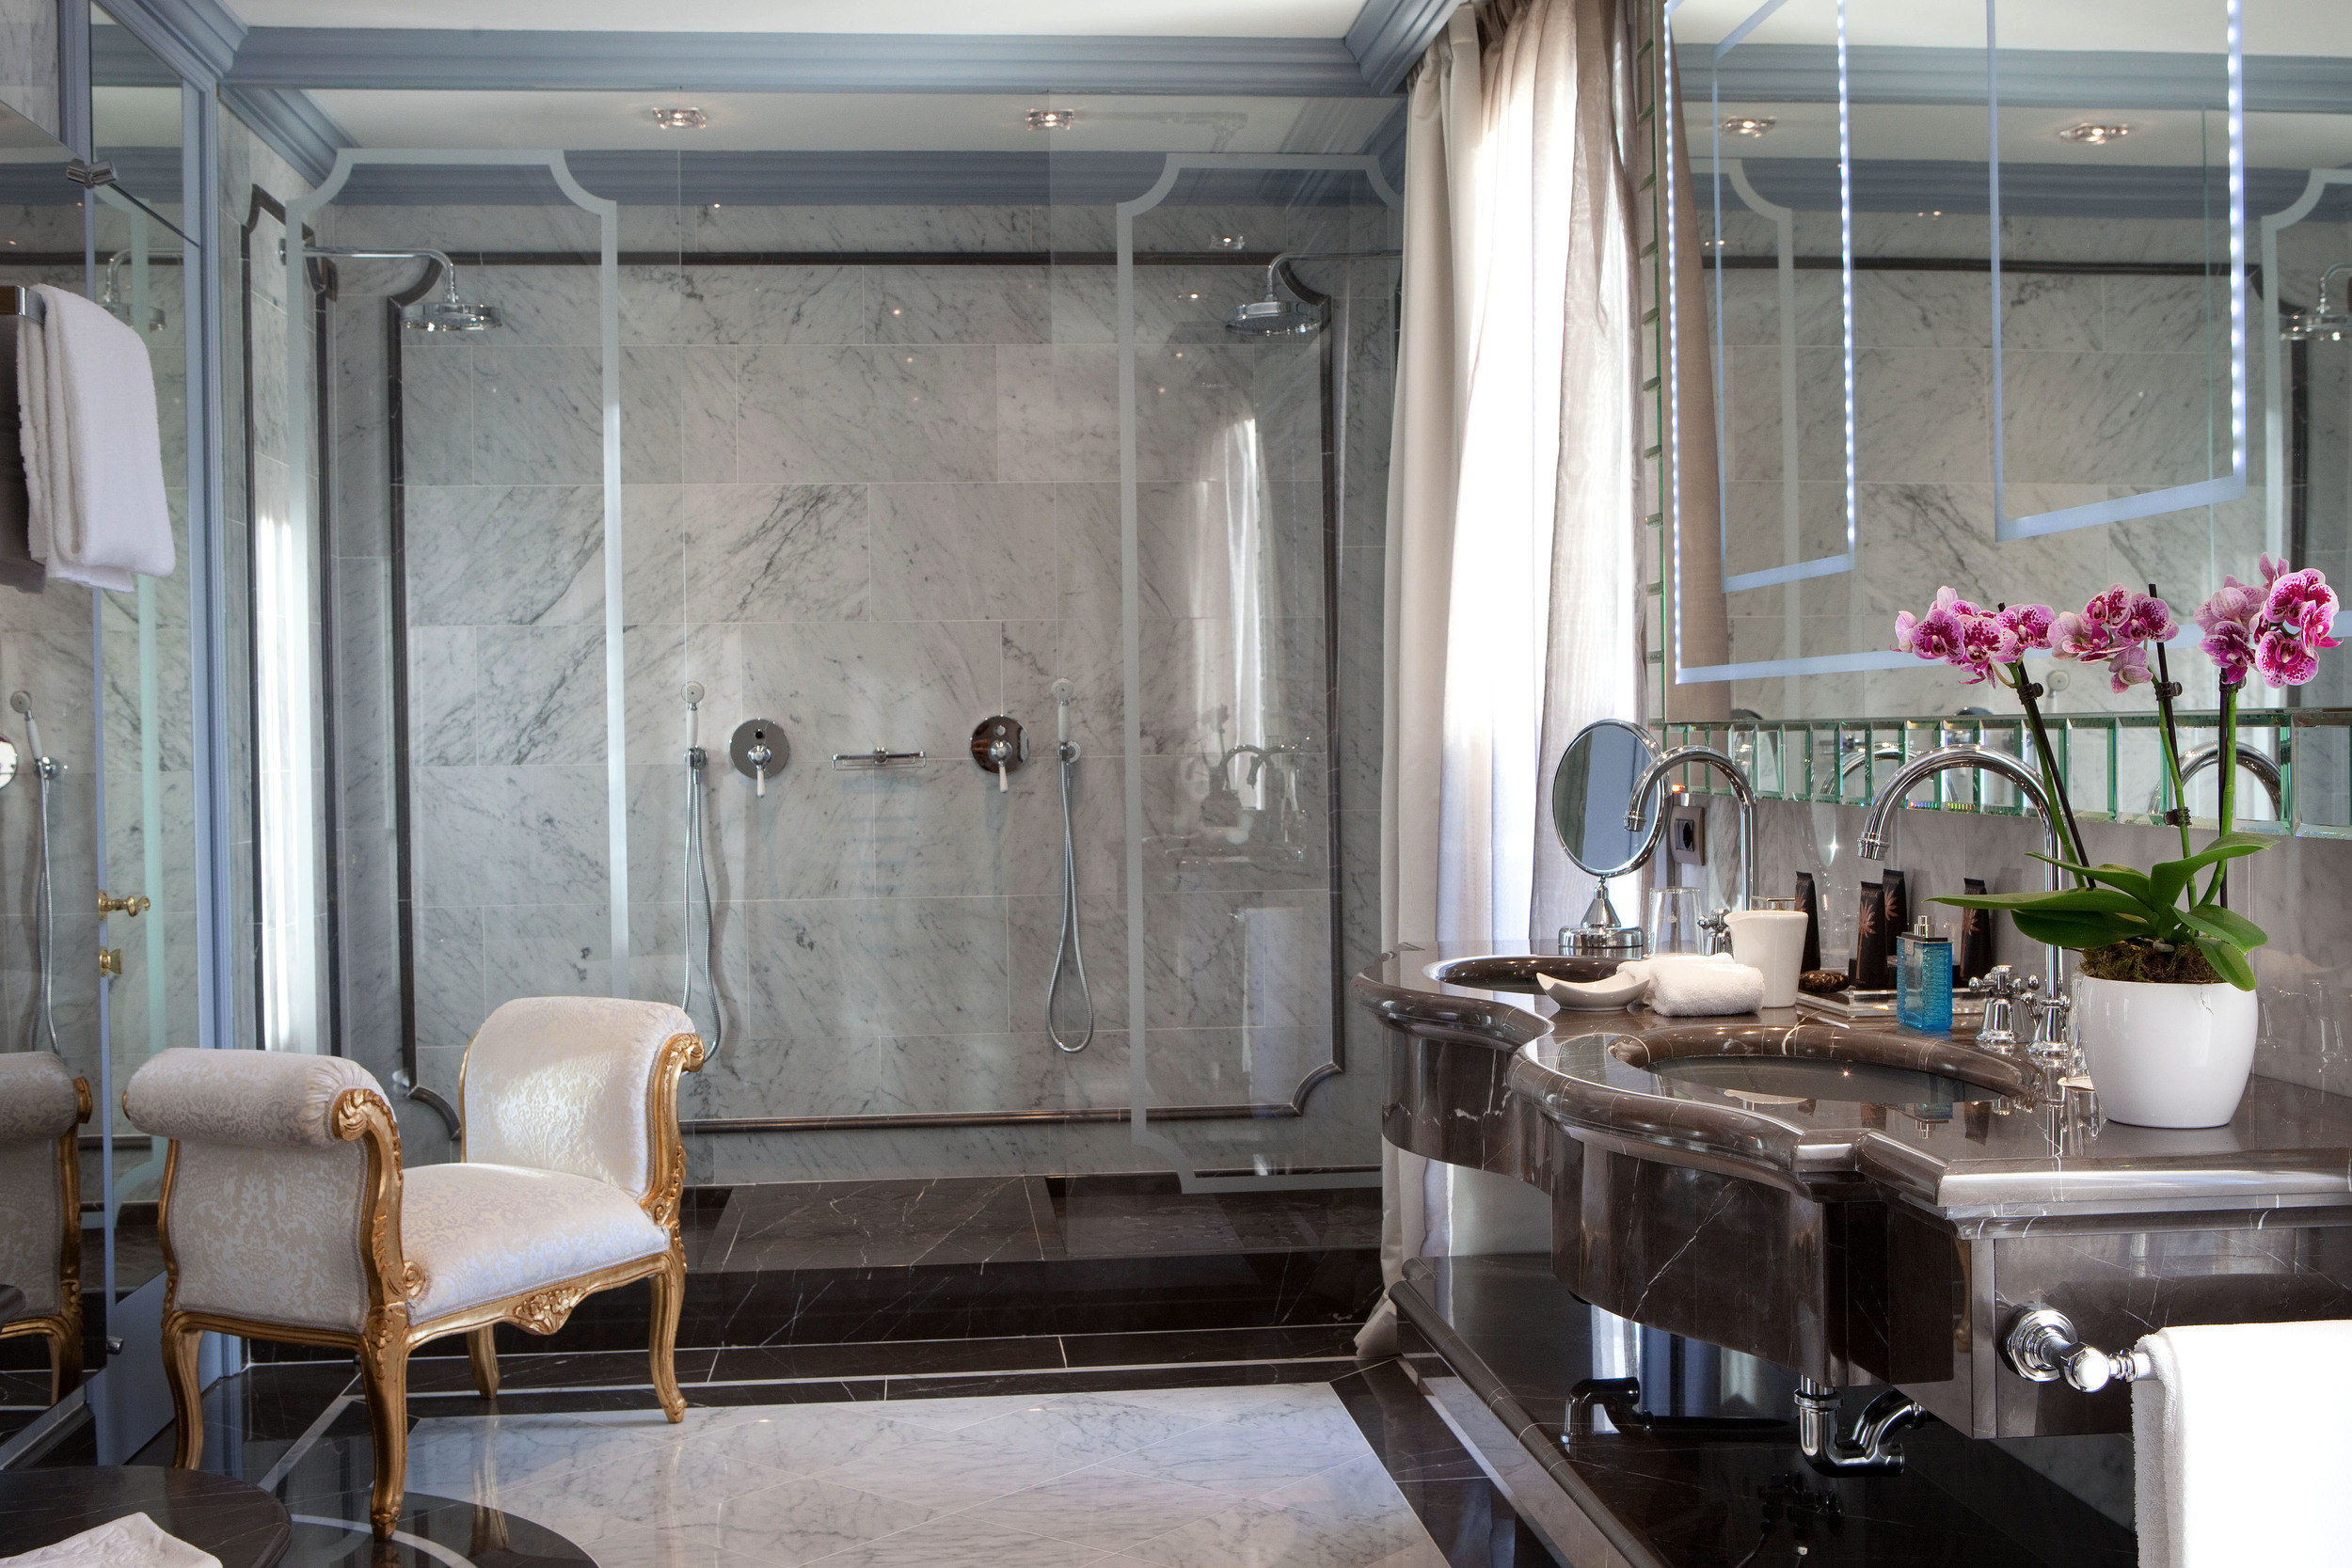 The brand new San Giorgio terrace suite was just unveiled at the  Luna Hotel Baglioni  in Venice